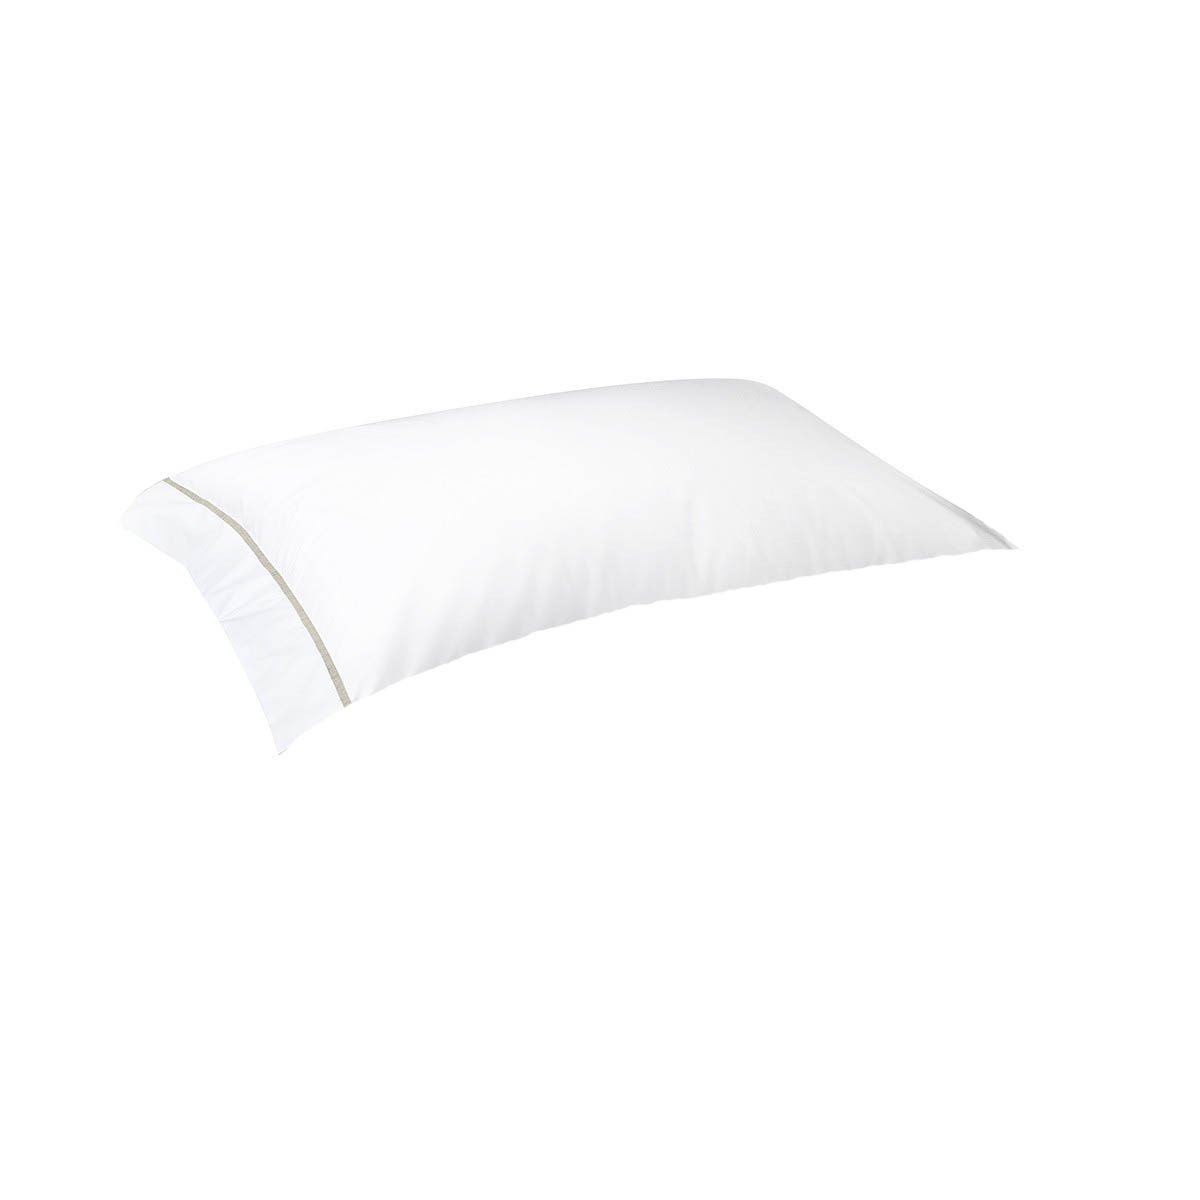 Athena Nacre Bedding Collection by Yves Delorme | Fig Linens - White and ivory pillowcase